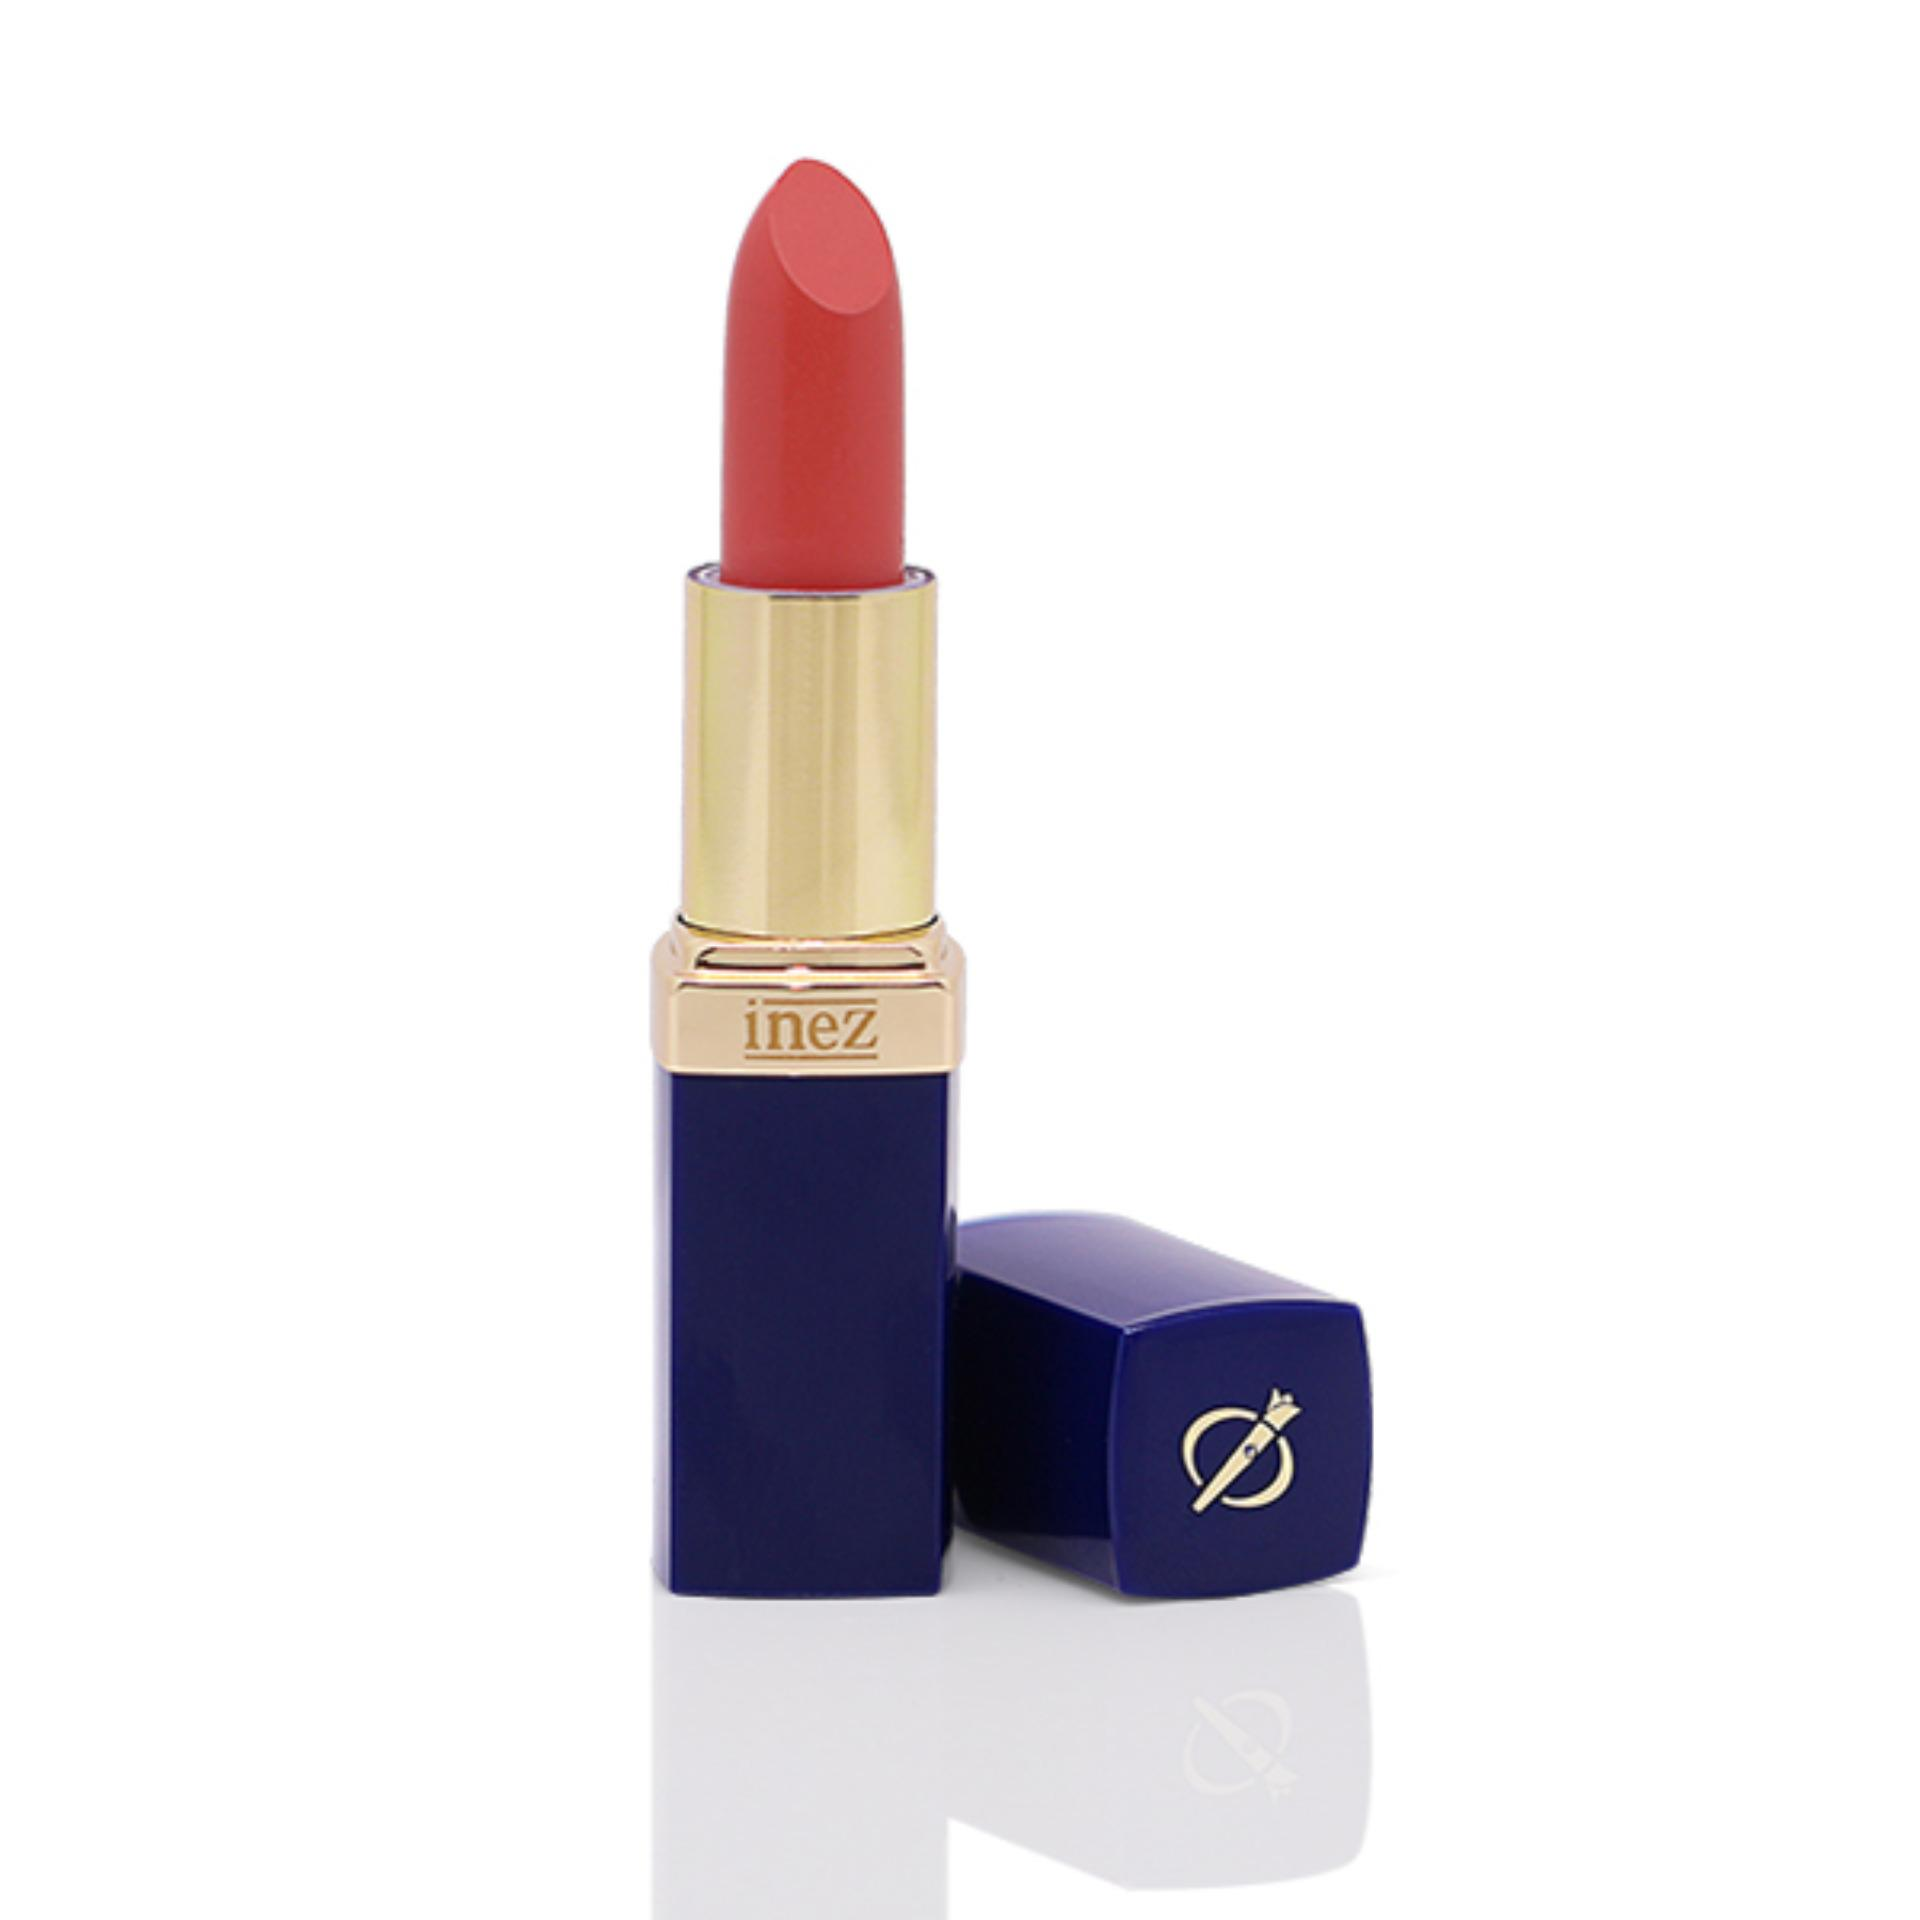 Inez Colour Contour Plus Lipstick - Sandy Coral